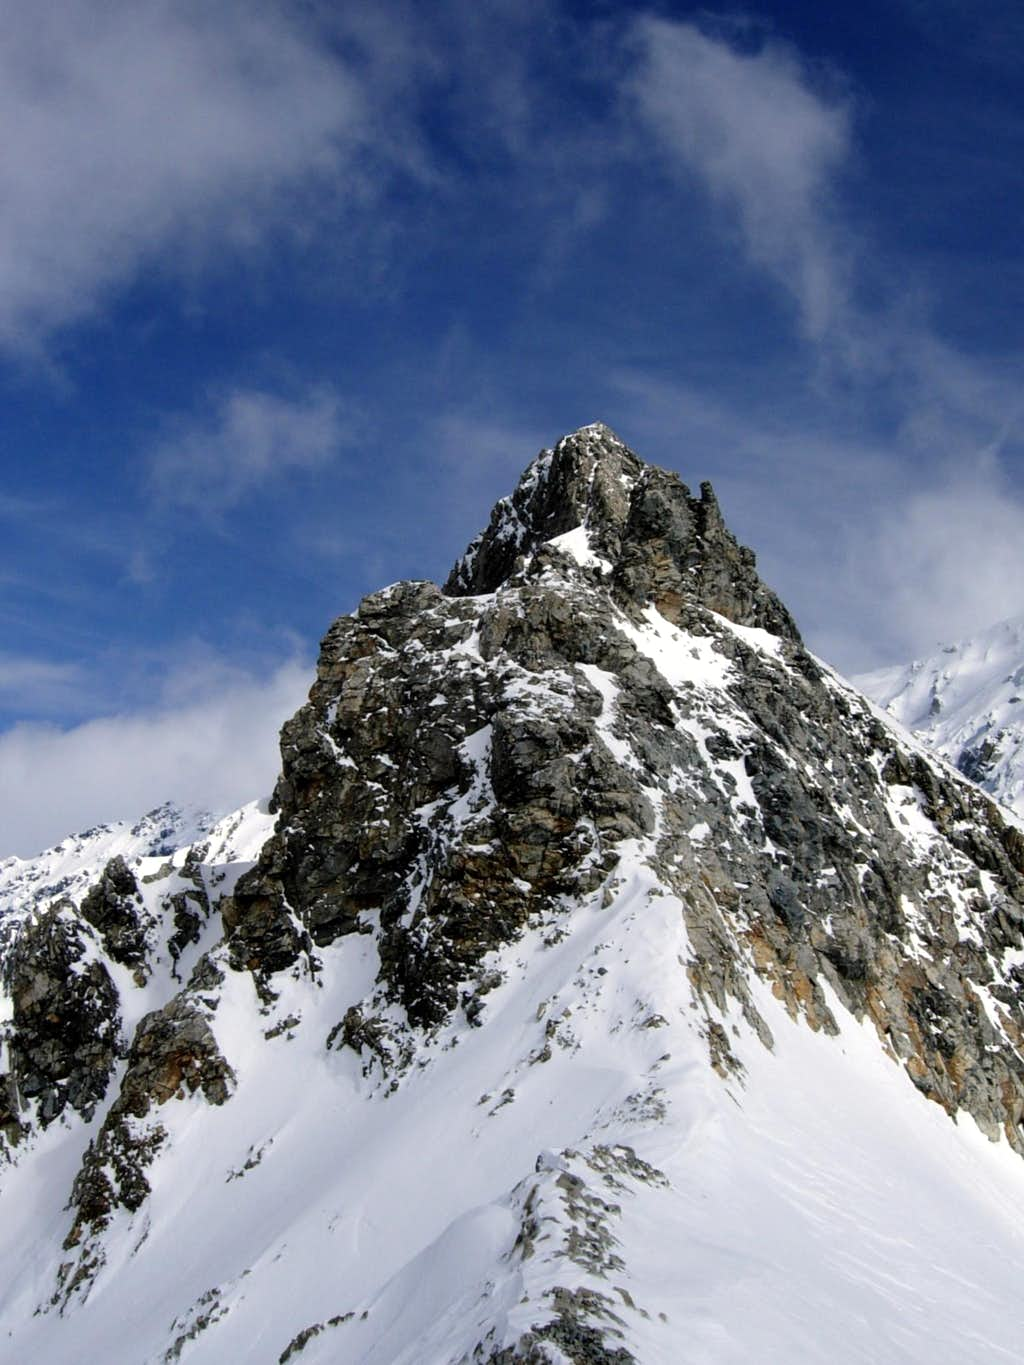 Cima delle Pale Rosse, Northern summit